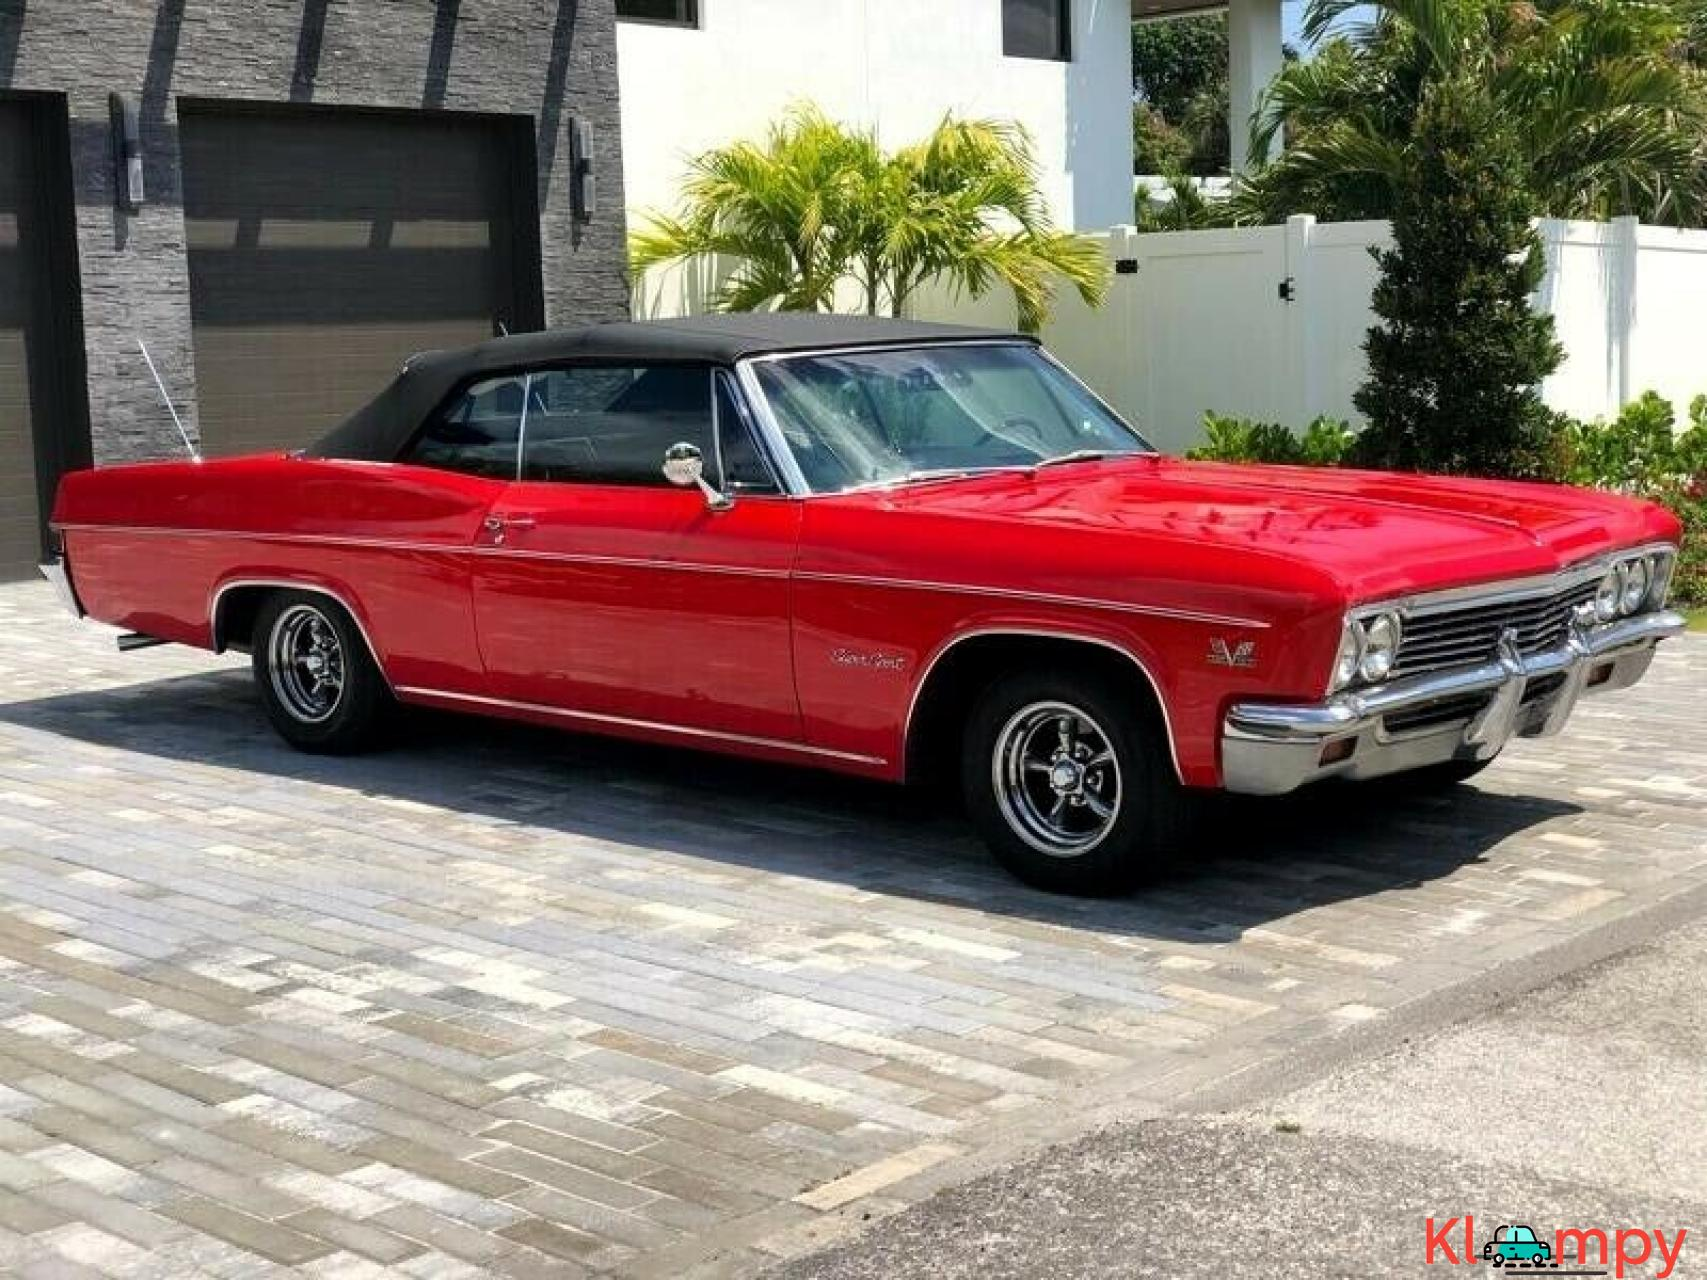 1966 Chevrolet Impala MATCHING NUMBERS PWR - 3/20